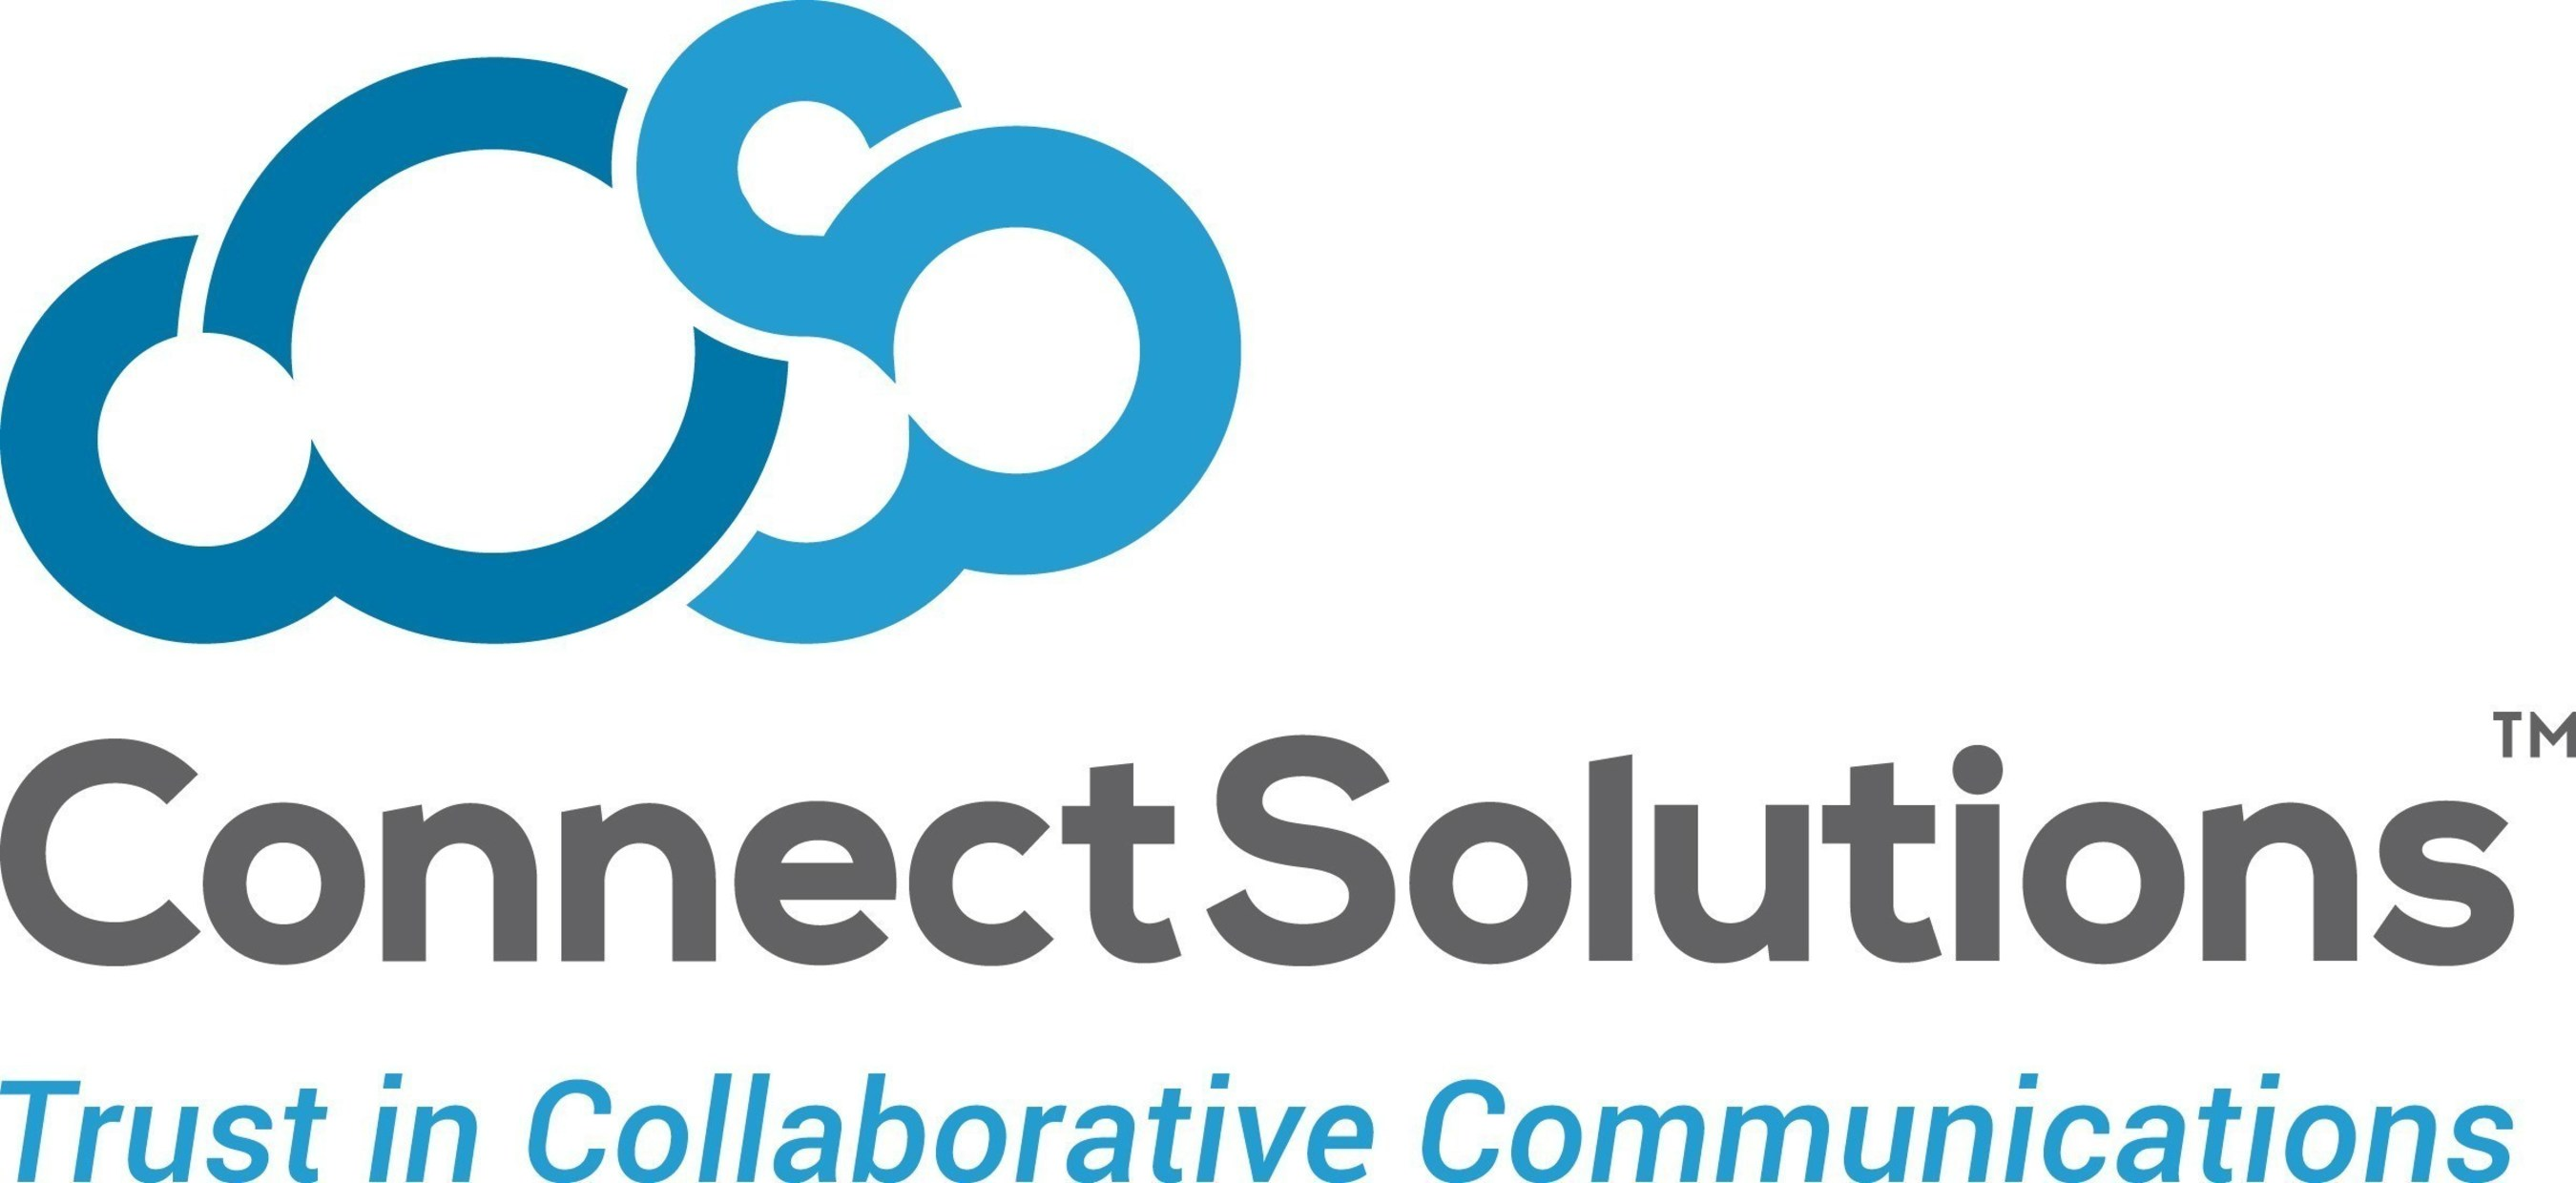 ConnectSolutions Webinar: How to Successfully Deploy Enterprise Voice and Overcome Endpoint Device